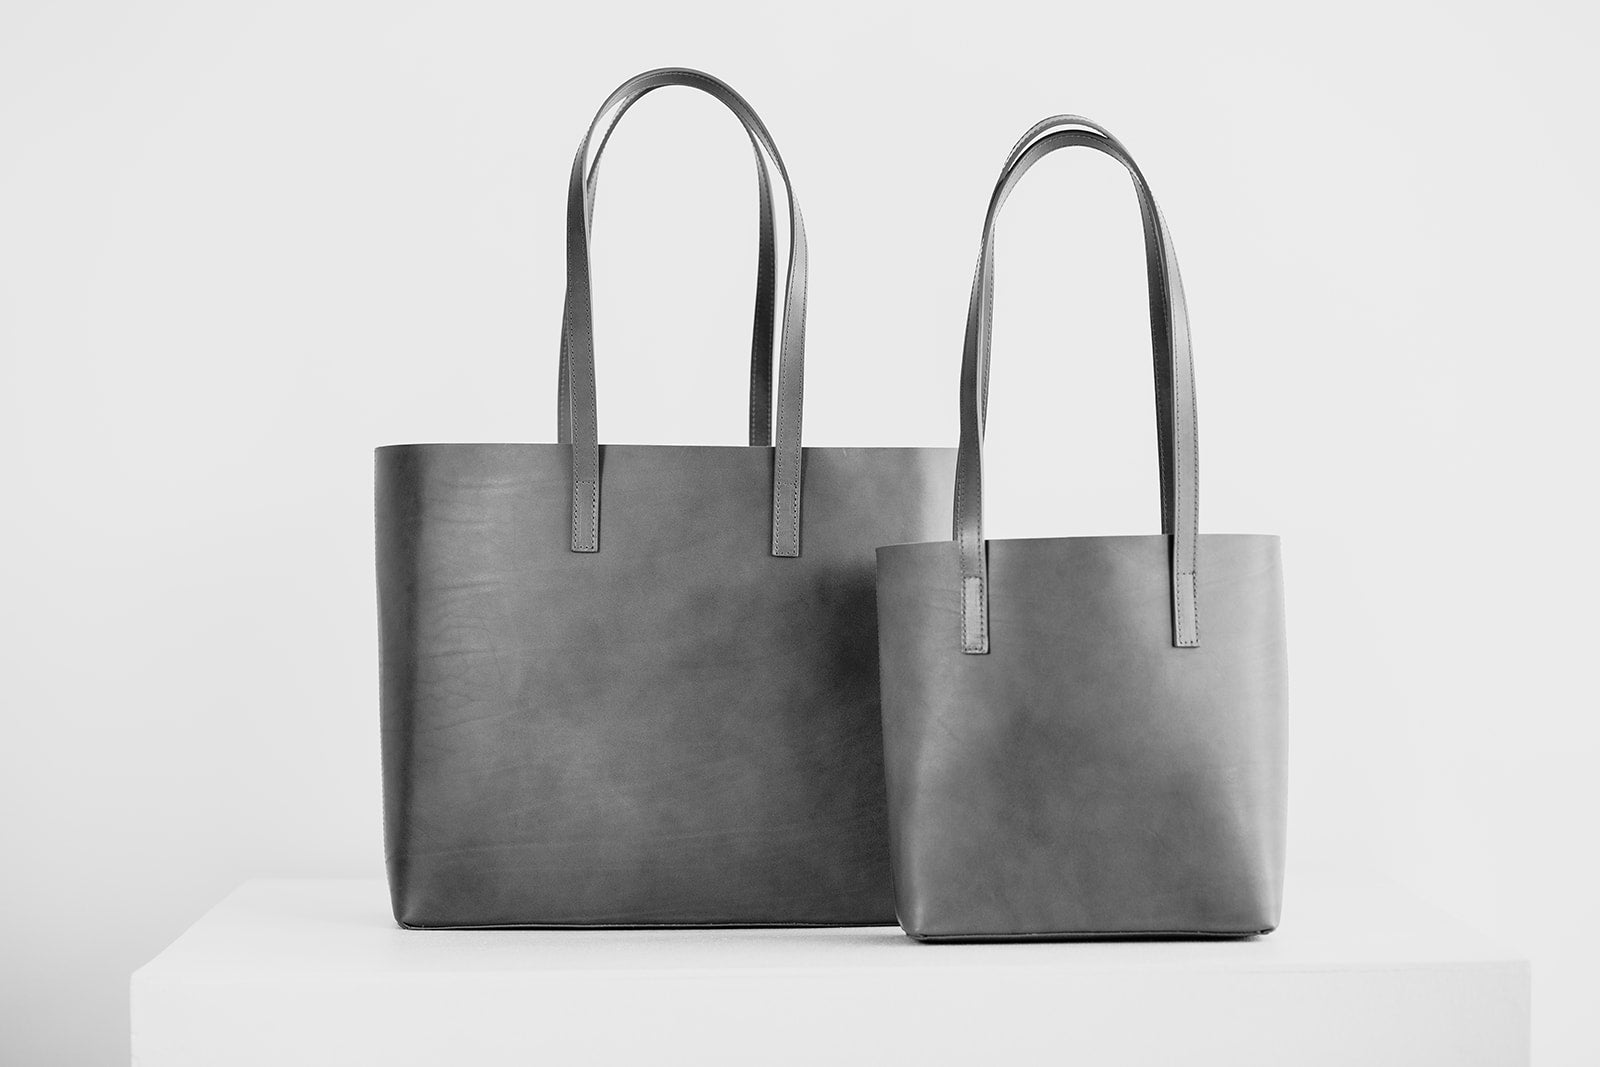 MINI DAILY TOTE - UNDYED NATURAL